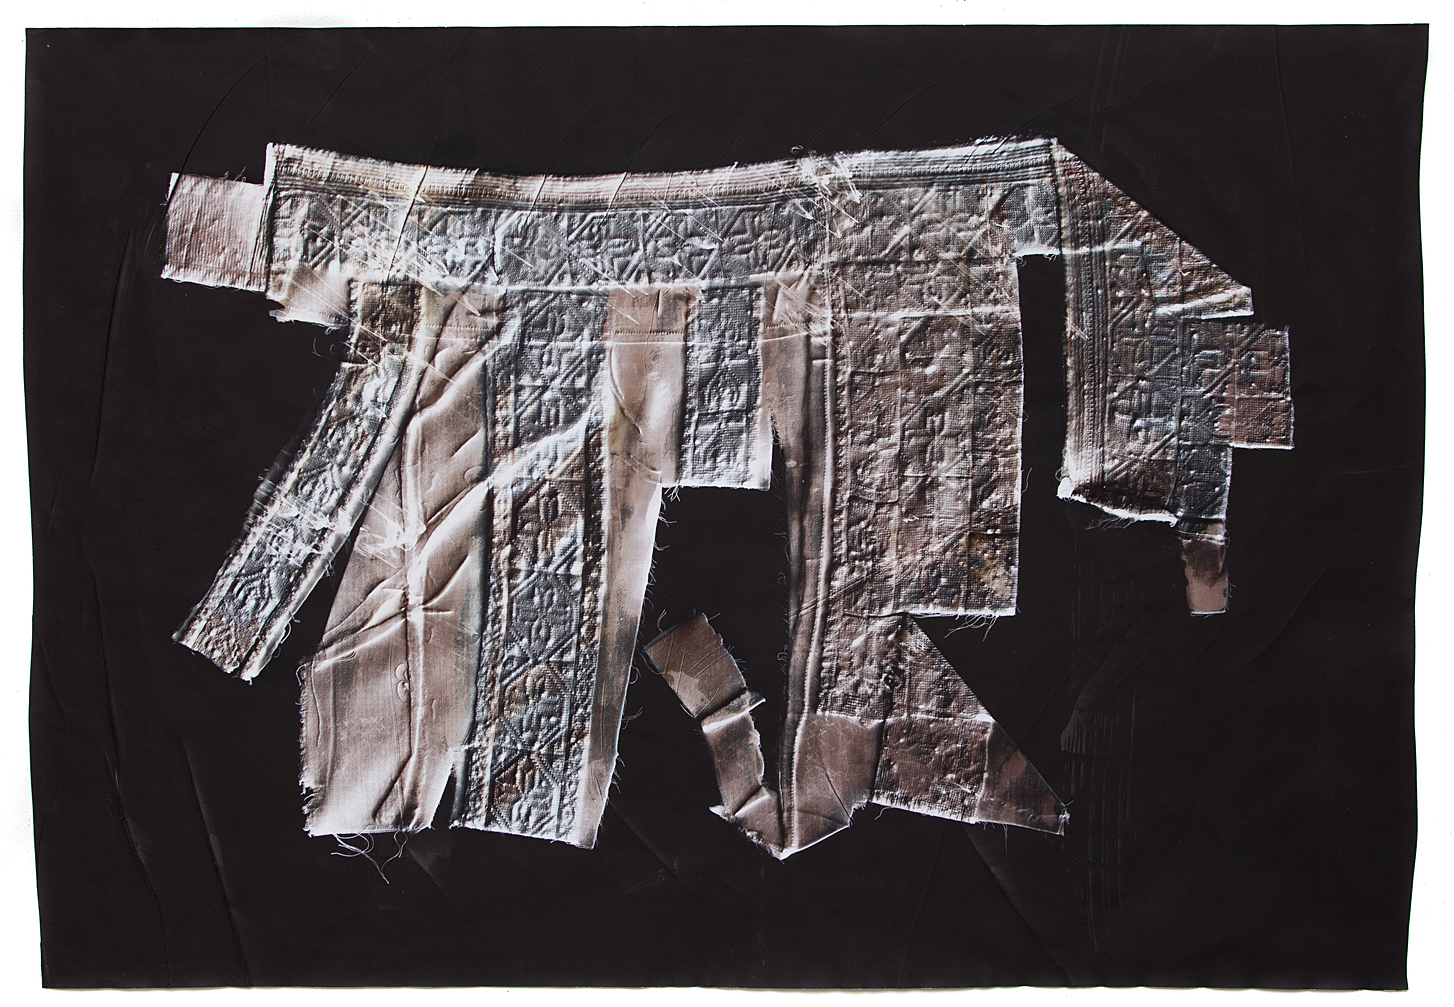 KLEA MCKENNA  Learning to Shape the Word (1) , 2018 Photographic Relief. Unique Photogram on gelatin silver fiber paper. Sepia, selenium and copper toned. Impression of a hand embroidered dress fragment. Palestine / Bedouin. 1990s. 27.5 x 39.75 inches